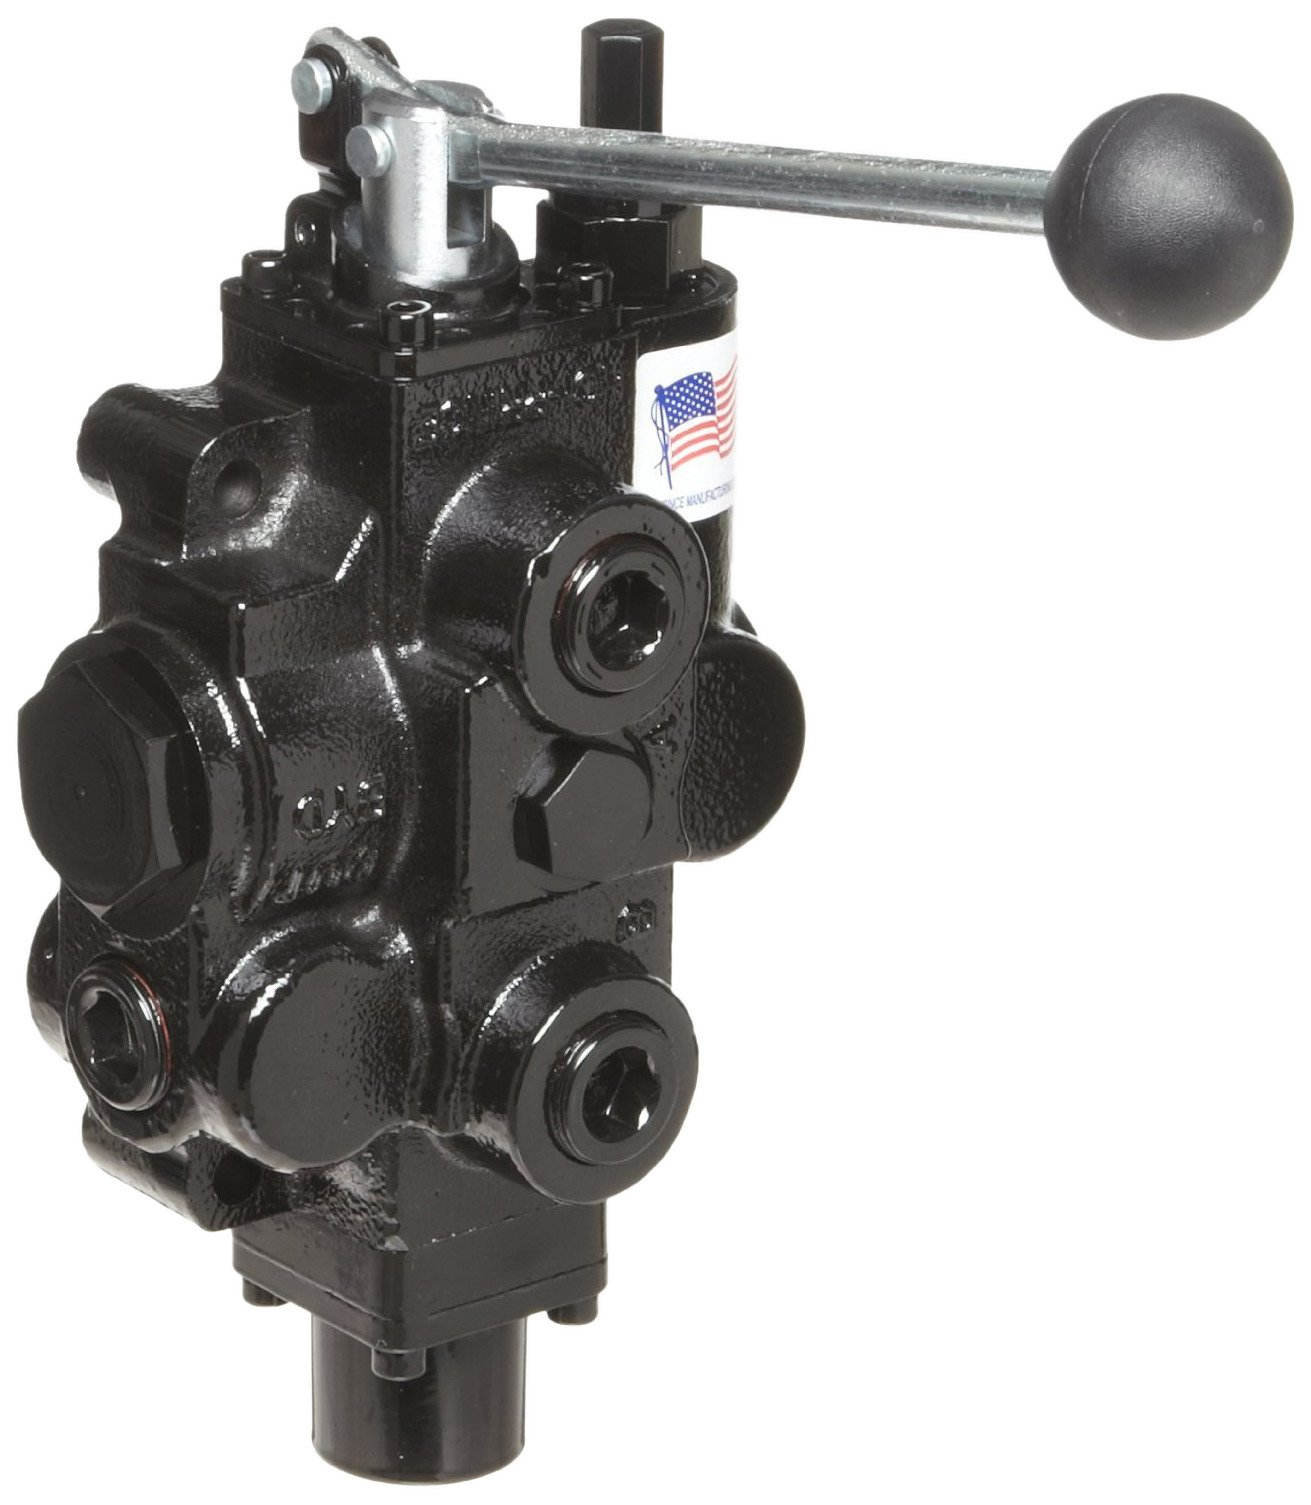 Prince RD513CA5A4B1 Directional Control Valve, Monoblock, Cast Iron, 1 Spool, 4 Ways, 3 Positions, Tandem, Spring Center, Lever Handle, 3000 psi, 30 gpm, In/Out: 3/4'' NPT Female, Work 3/4'' NPT Female